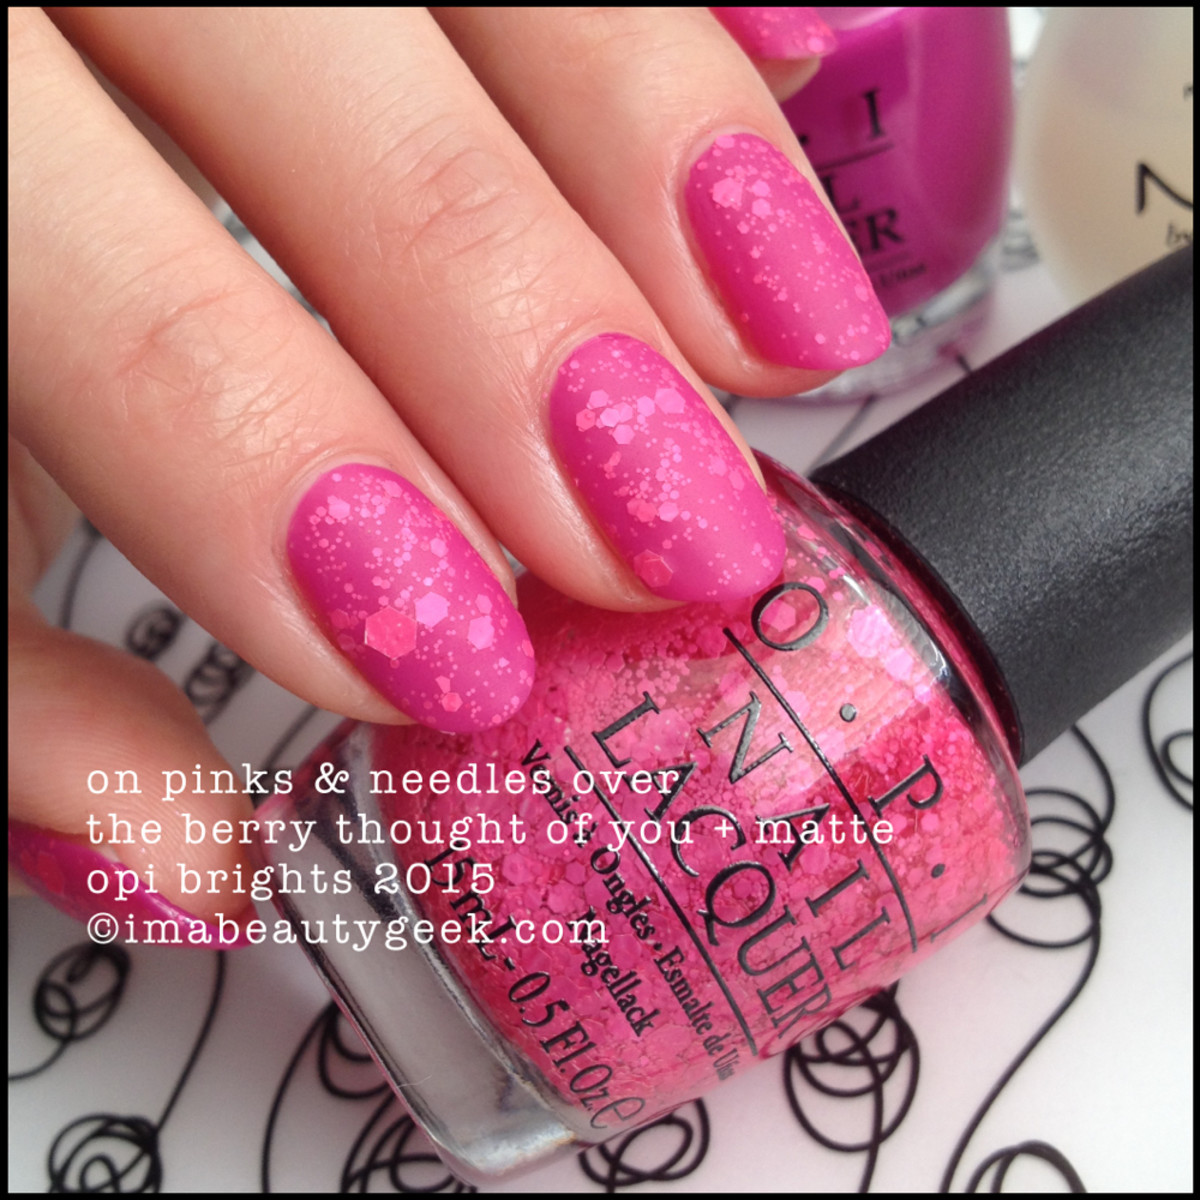 OPI Brights 2015_OPI On Pinks & Needles over The Berry Thought of You Matte